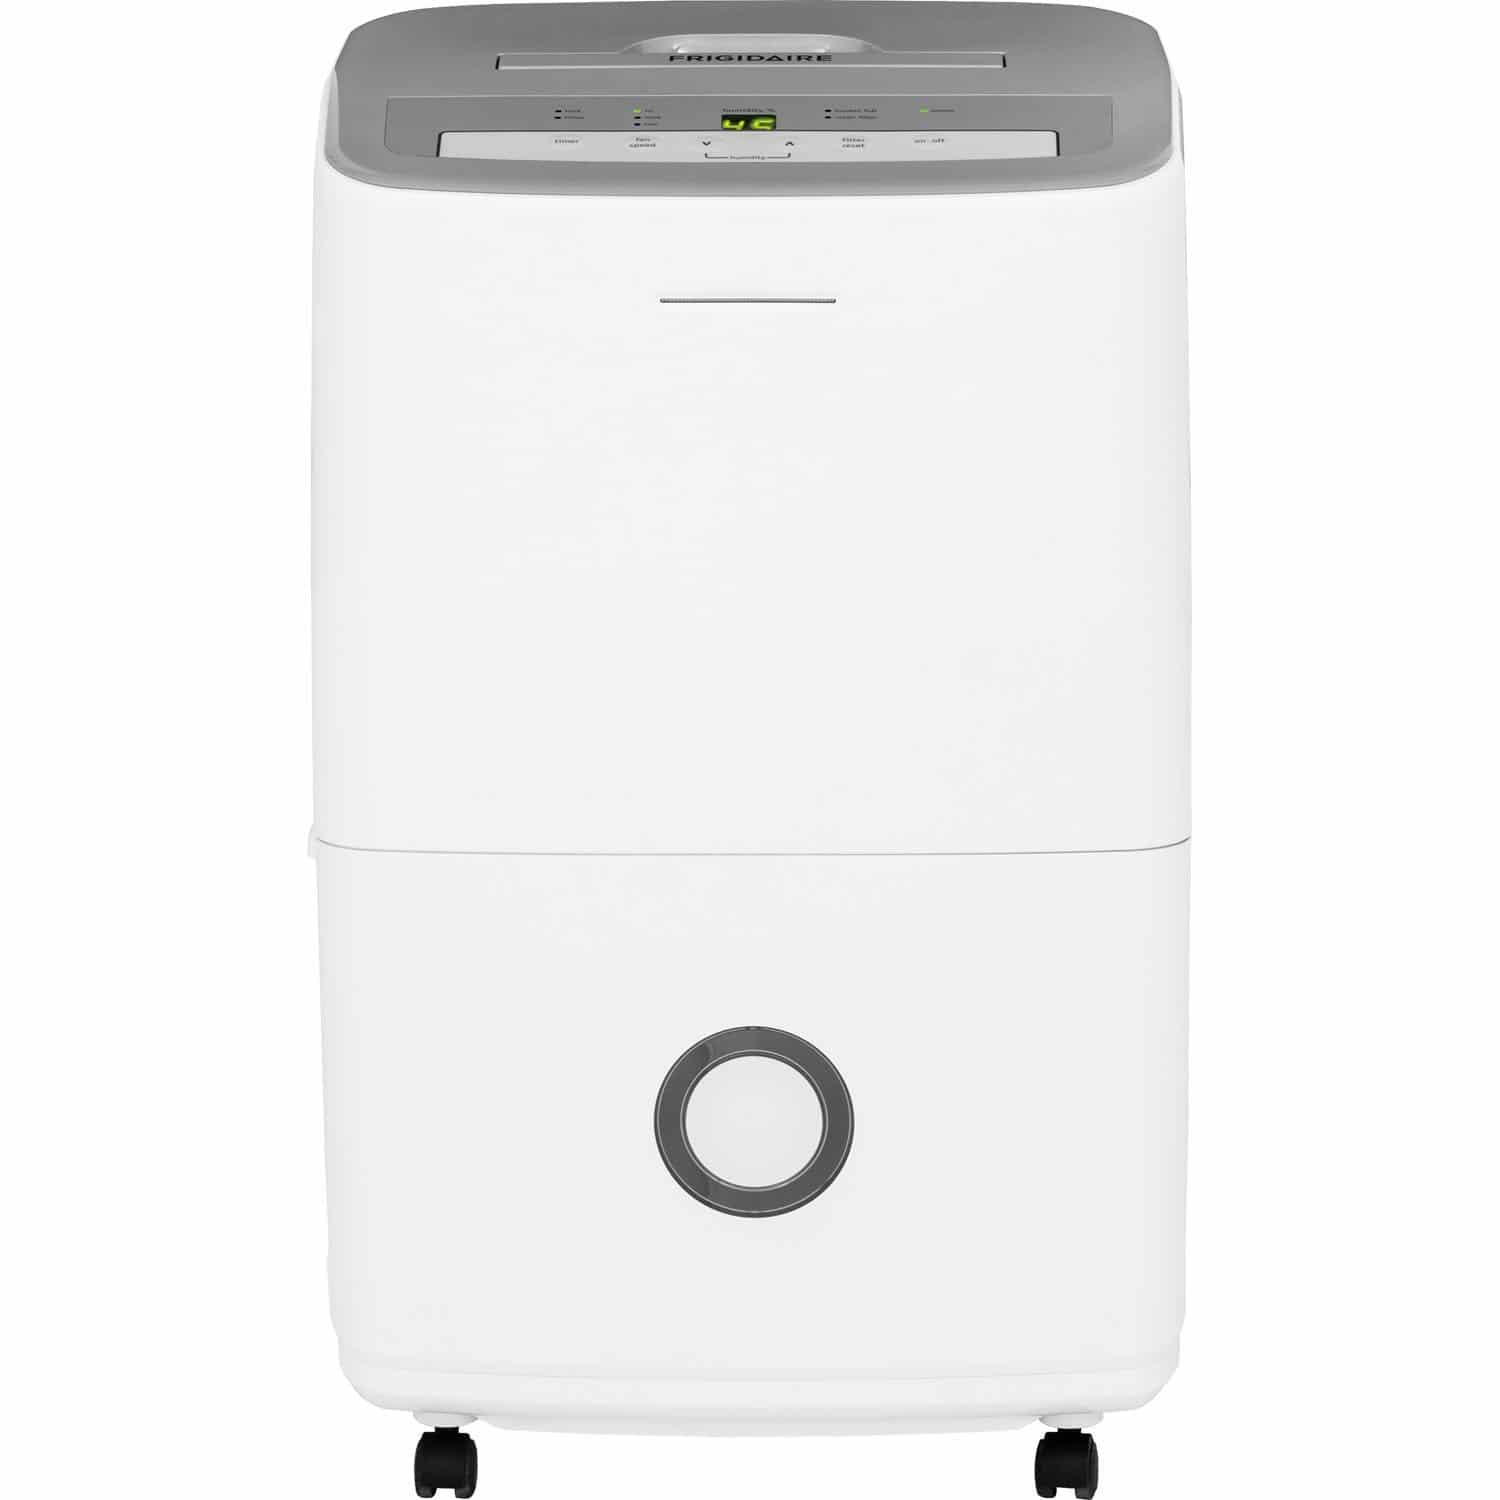 Best 10 Basement Dehumidifier Feb 2018 – Reviews & Buyer s